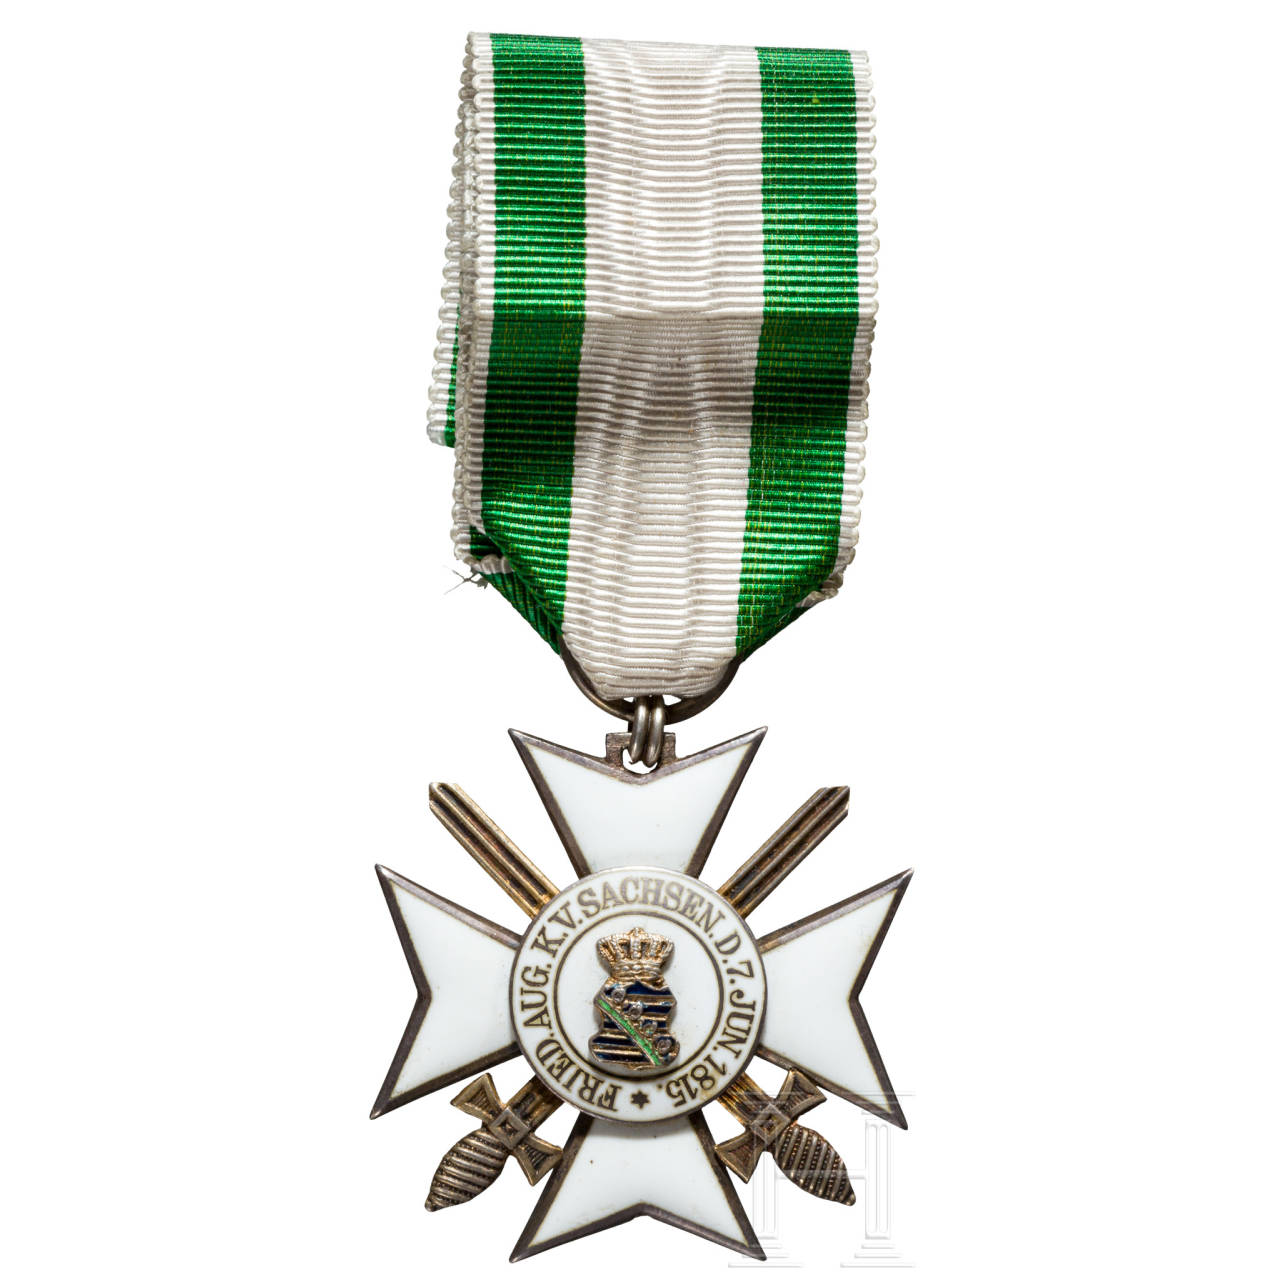 Order of Civil Merit - Knight's Cross 2nd class with swords